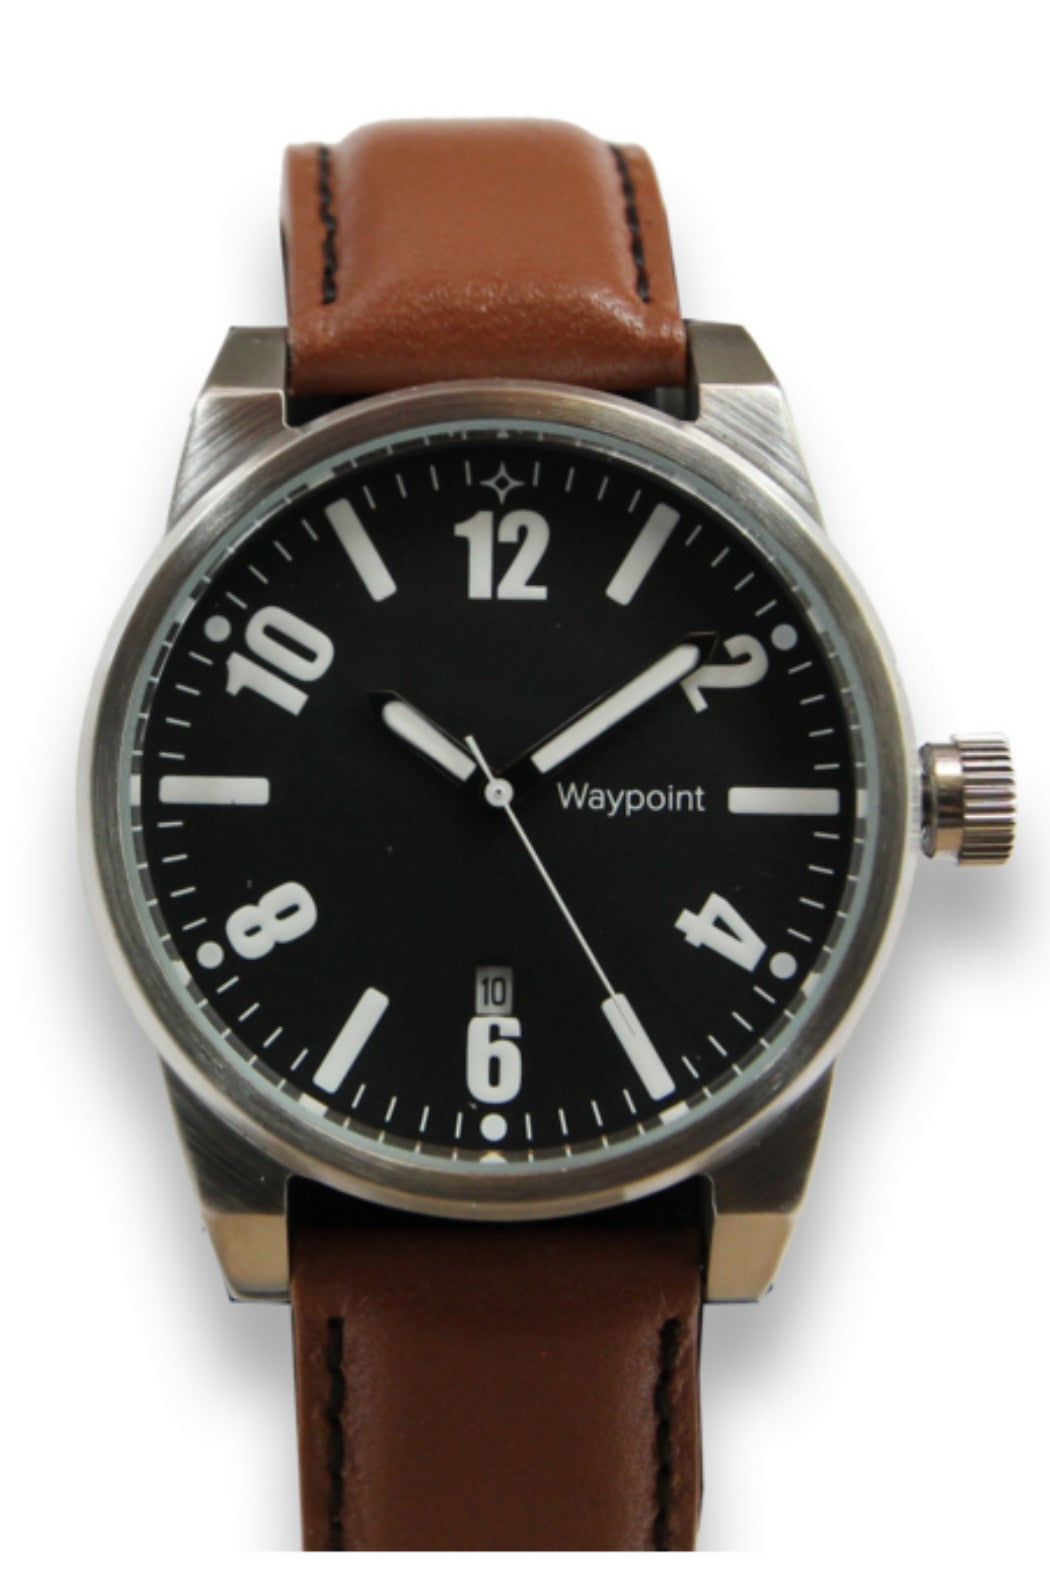 Waypoint Watches- Traveler Watch Classic with Black face and brown leather strap - R+D Hipster Emporium | Womens & Mens Clothing - 1